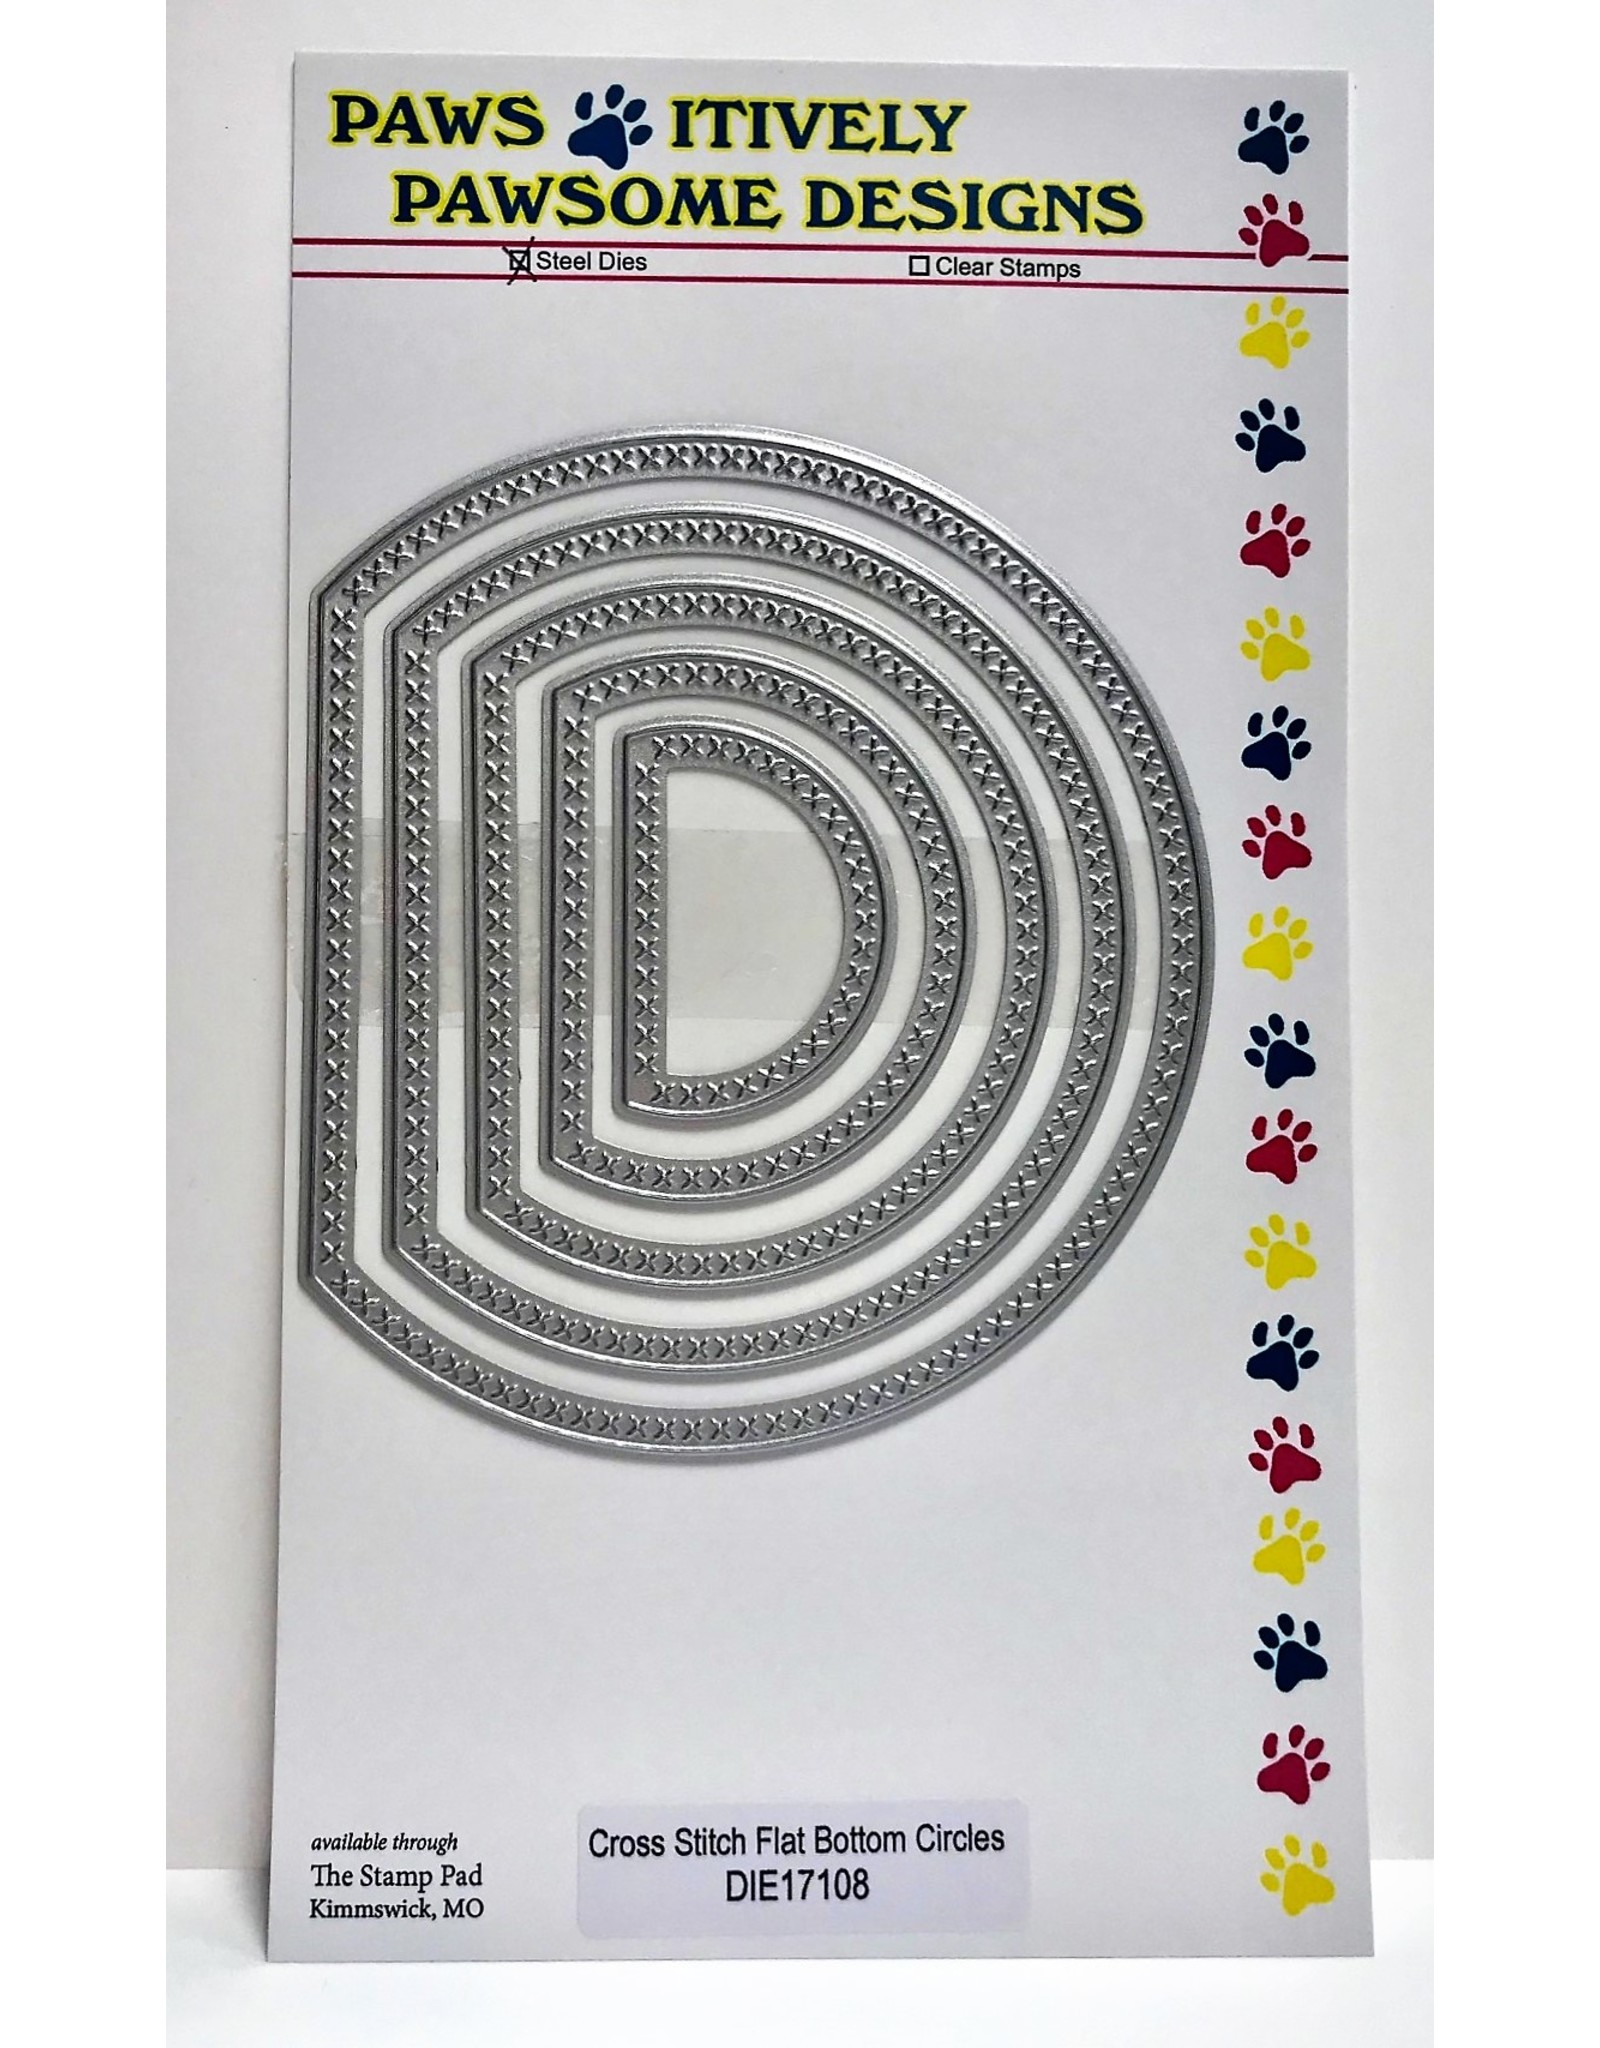 Paws-Itively Pawsome Designs Cross Stitch Flat Bottom Circles - Die